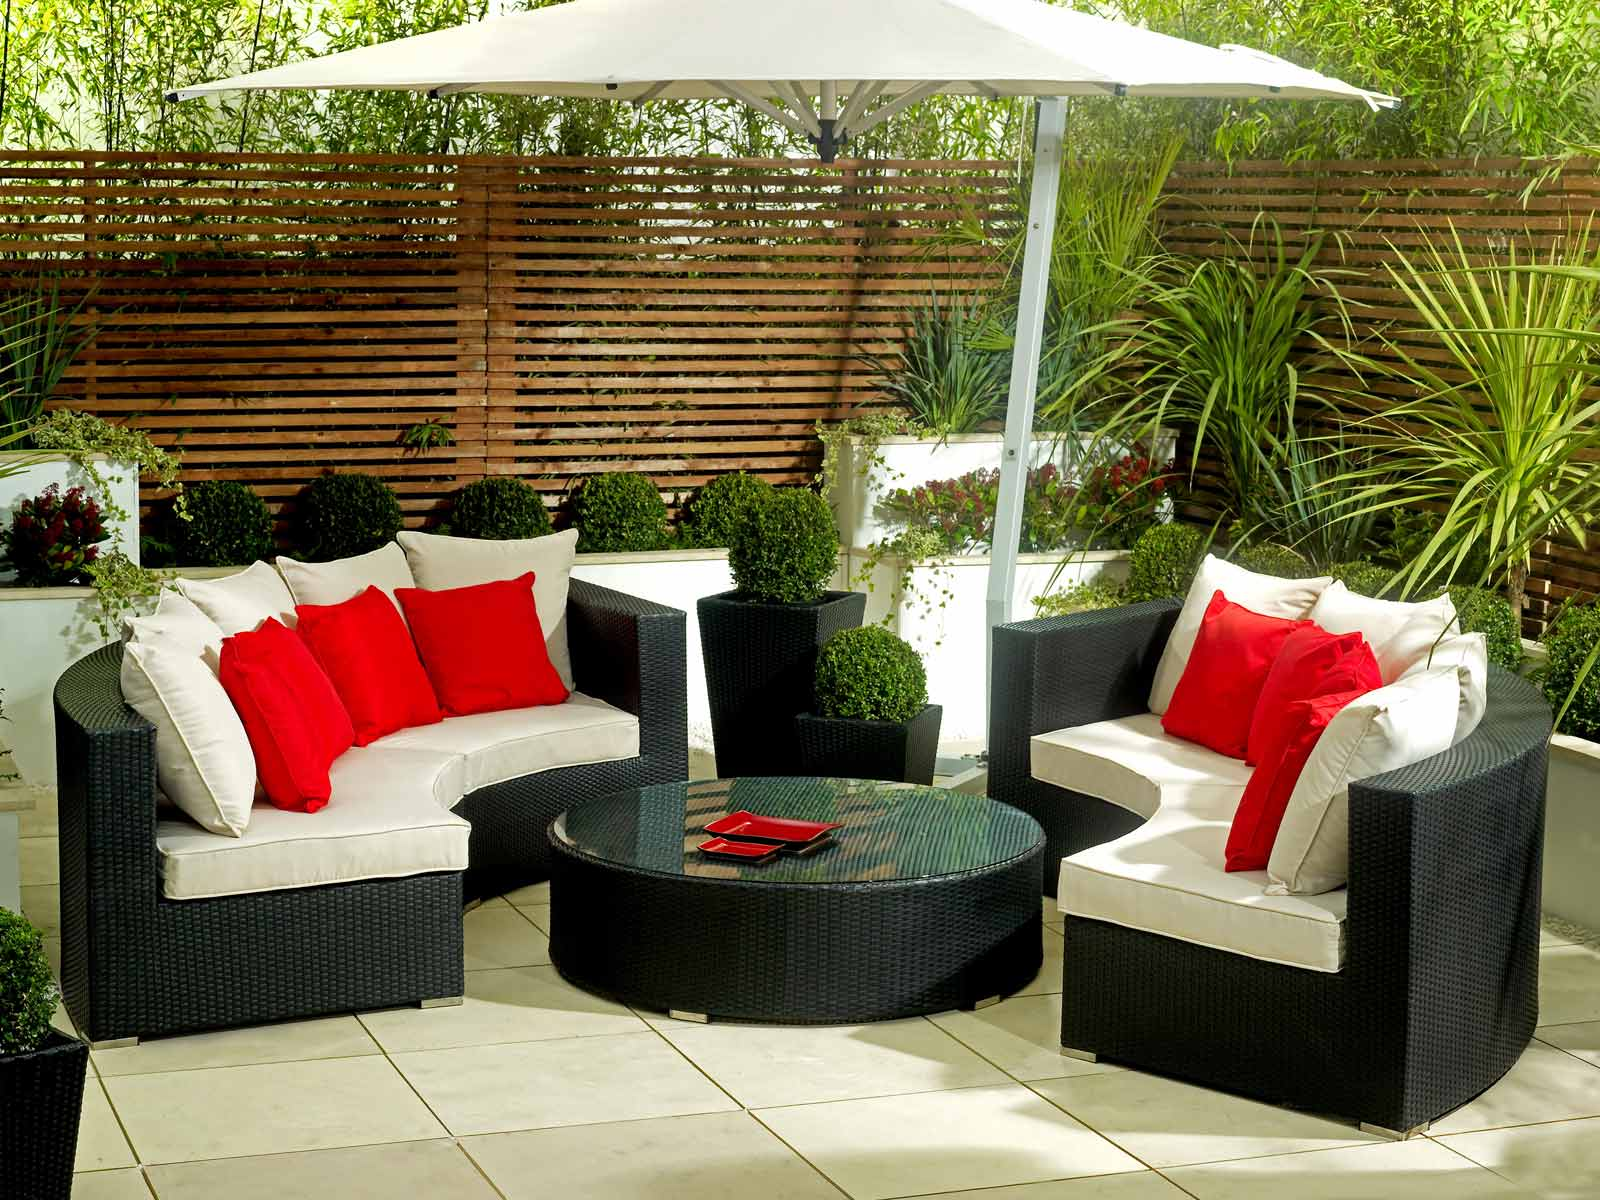 Furniture store sweet home furniture stores for Modern garden furniture